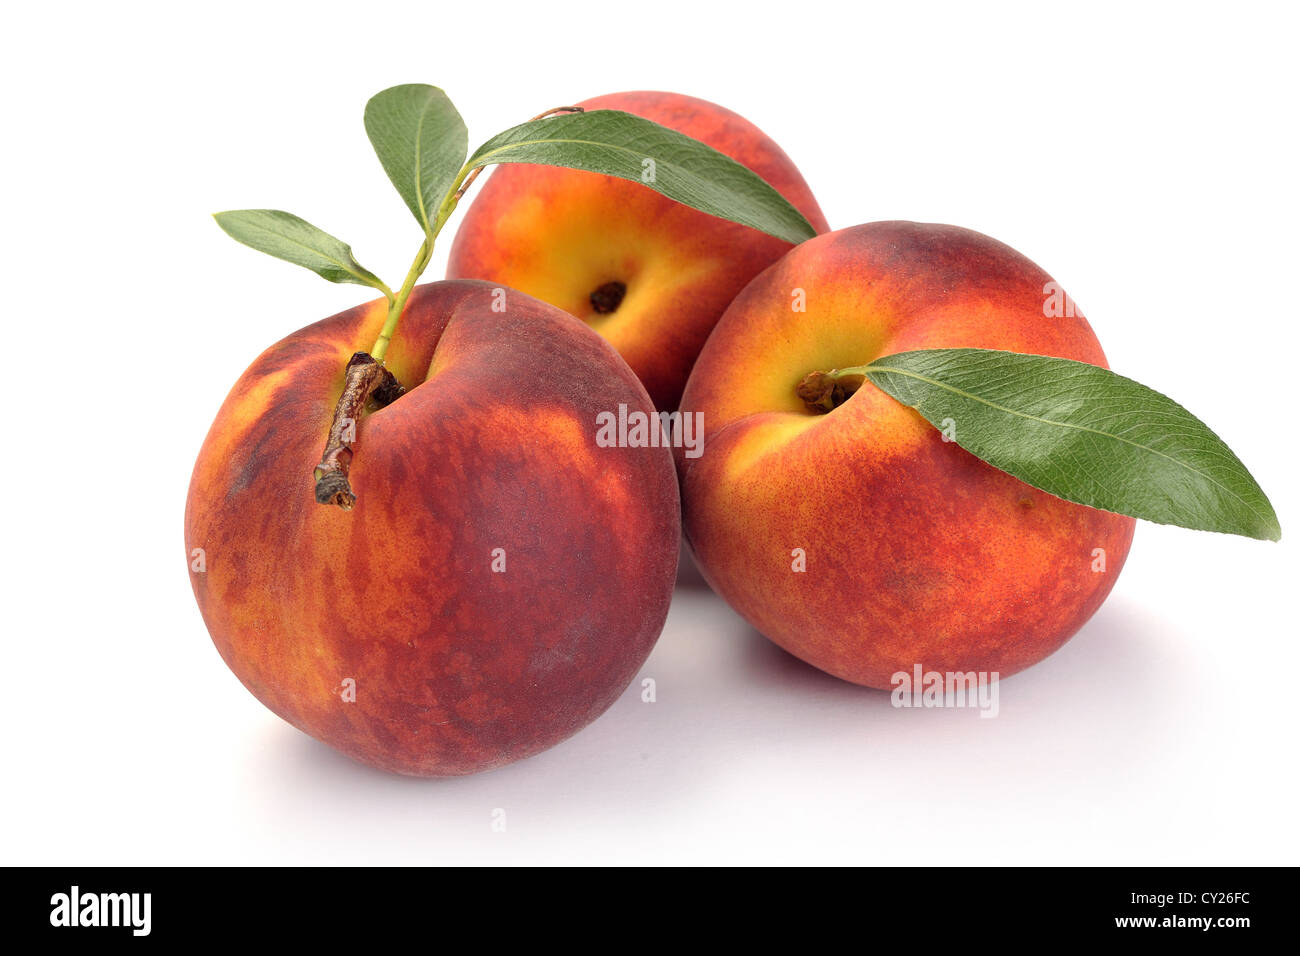 peach and leaves on a white background - Stock Image